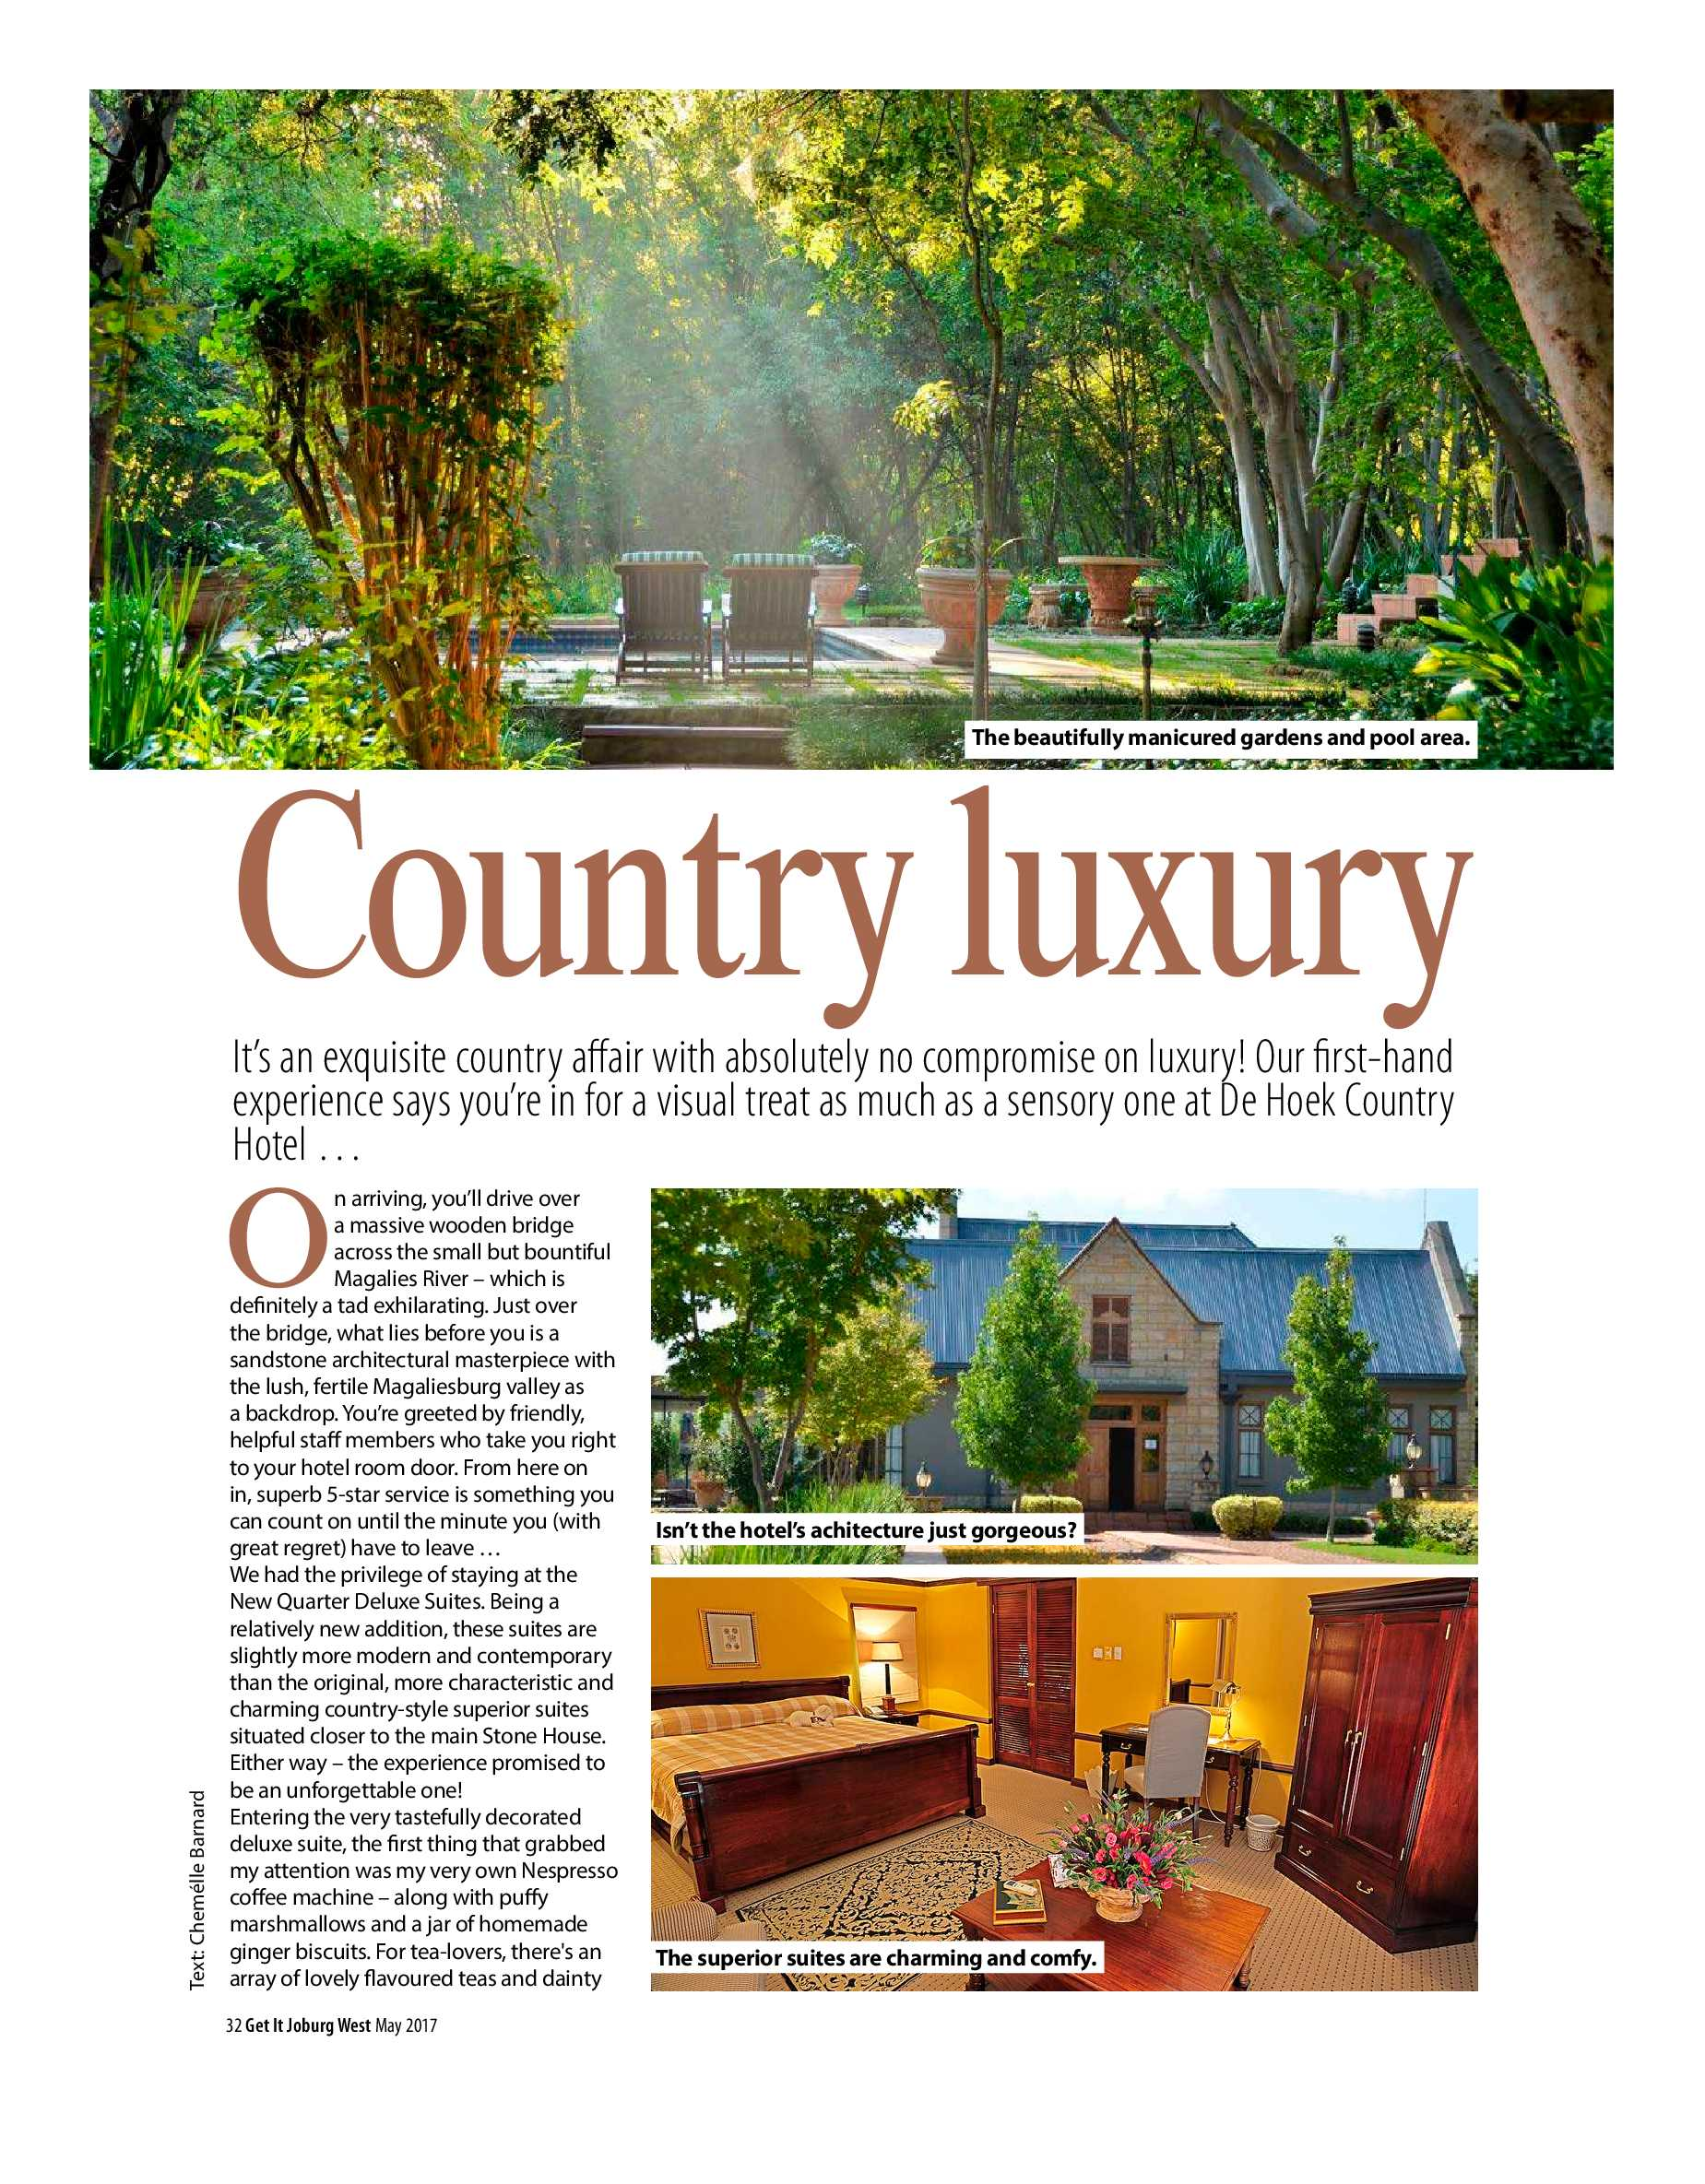 get-joburg-west-may-2017-epapers-page-32